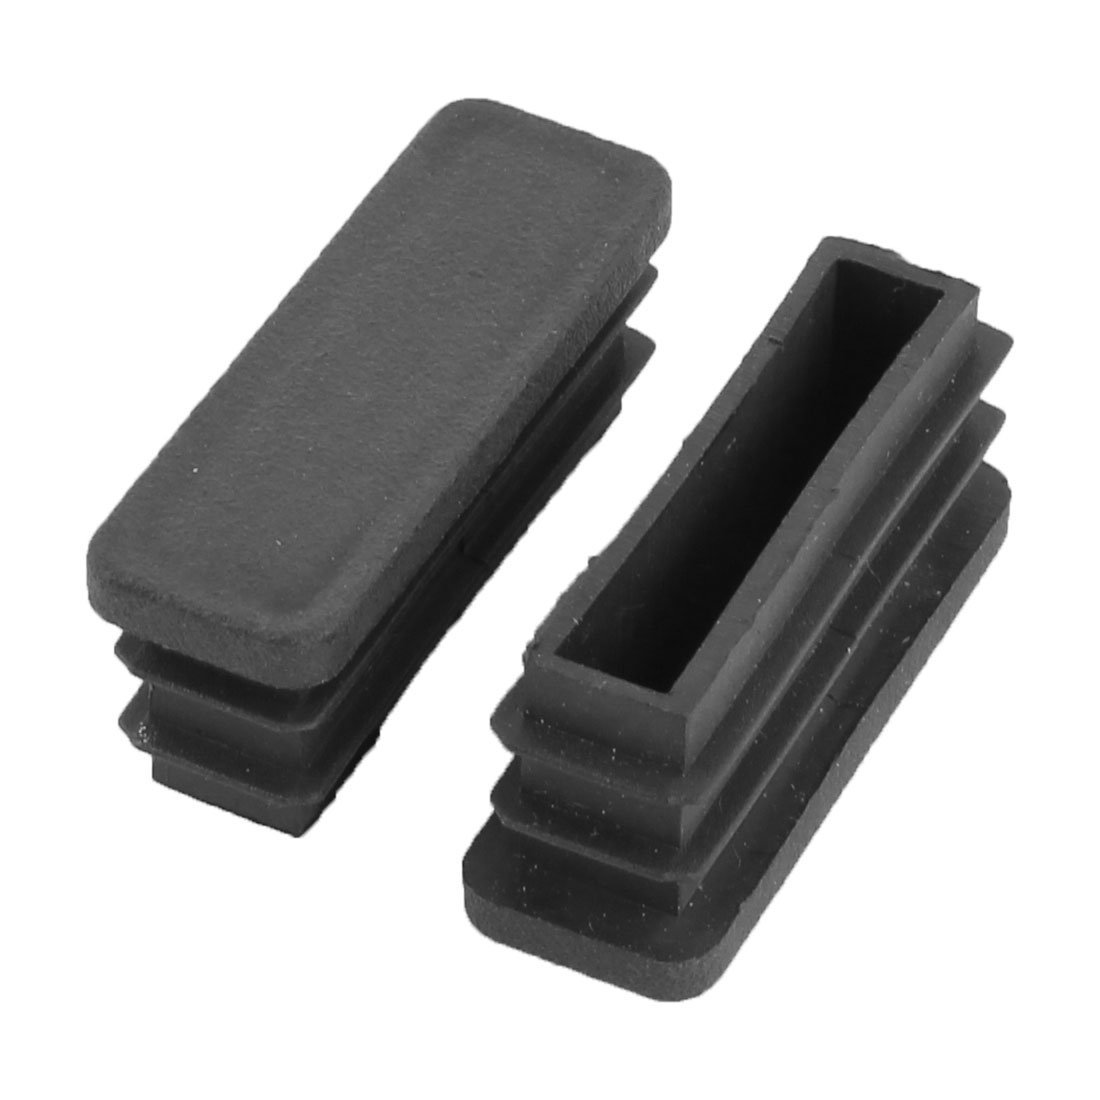 DealMux Plastic Rectangular Shaped Office Furniture Table Chair Leg Foot Tube Insert 20 Pcs Black DLM-B01MFBHRPC